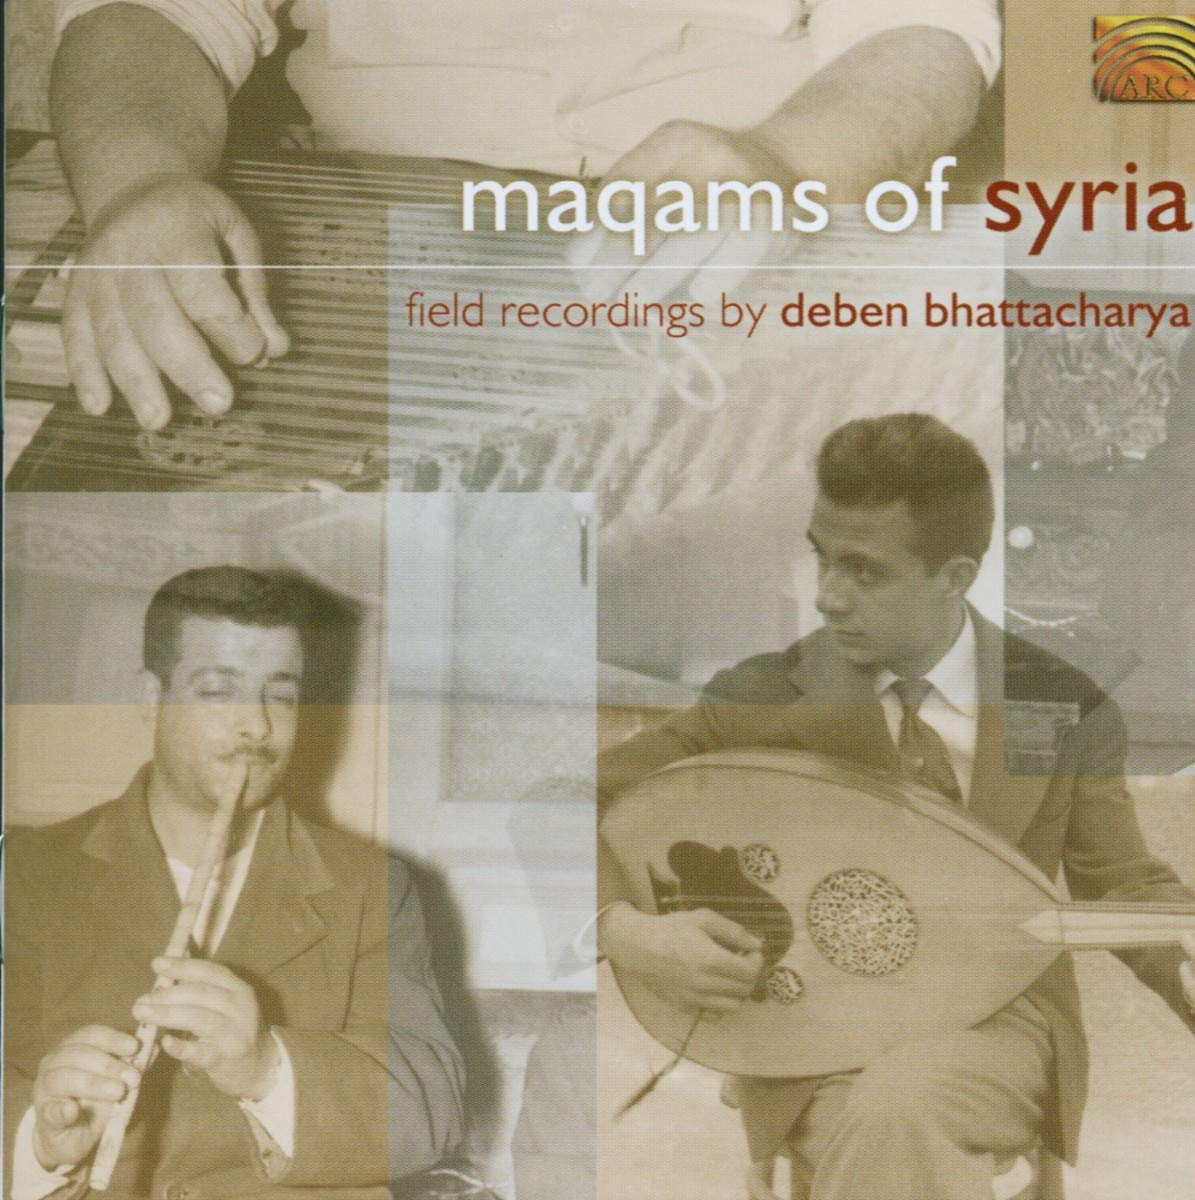 Maqams of Syria Financial sales sale Raleigh Mall